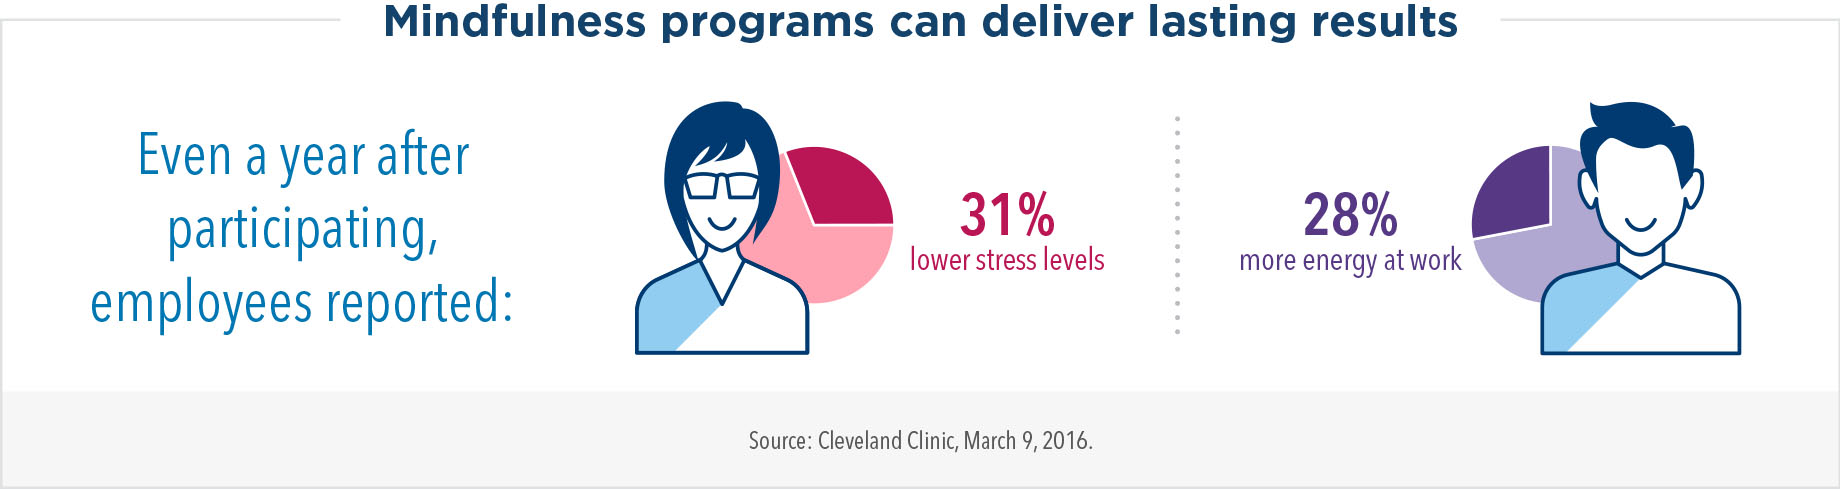 Mindfulness programs can deliver lasting results. Even a year after participating, employees reported 31% lower stress levels and 28% more energy at work.